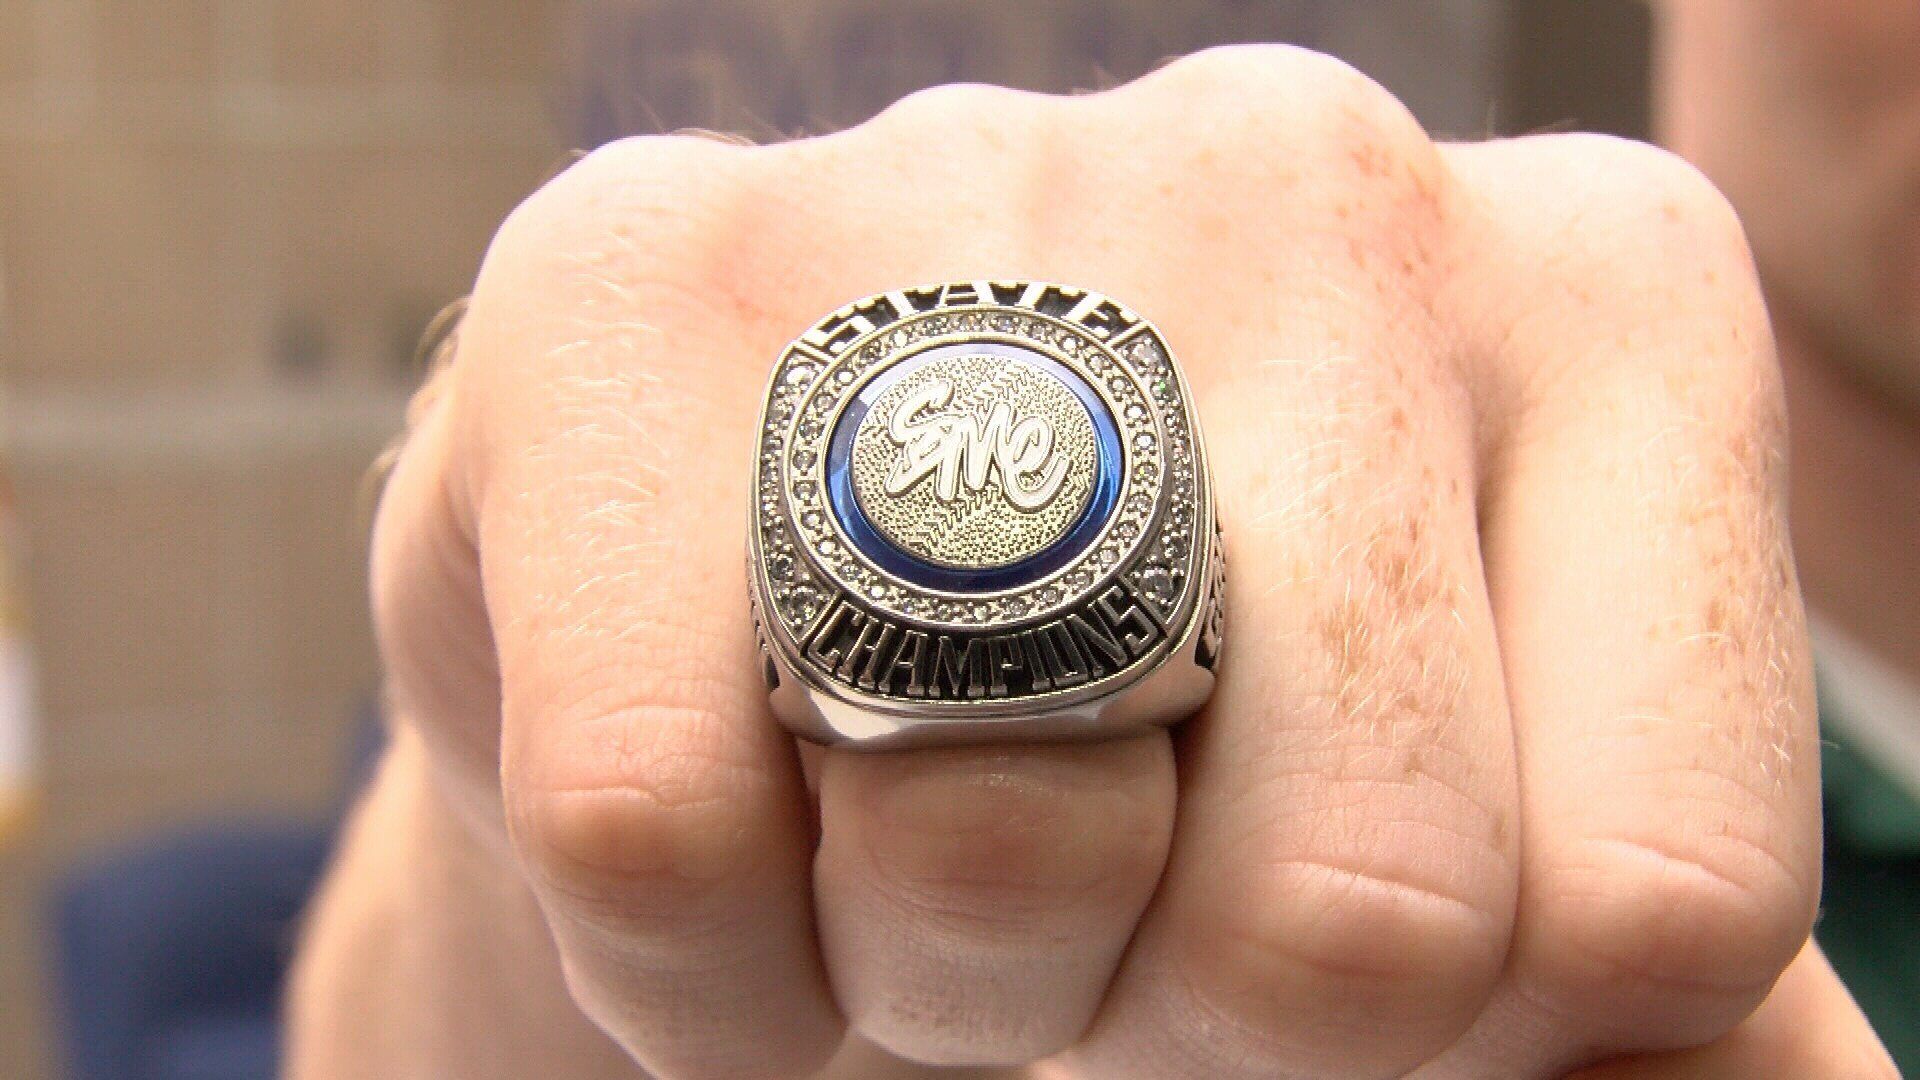 Texas State Championship Ring